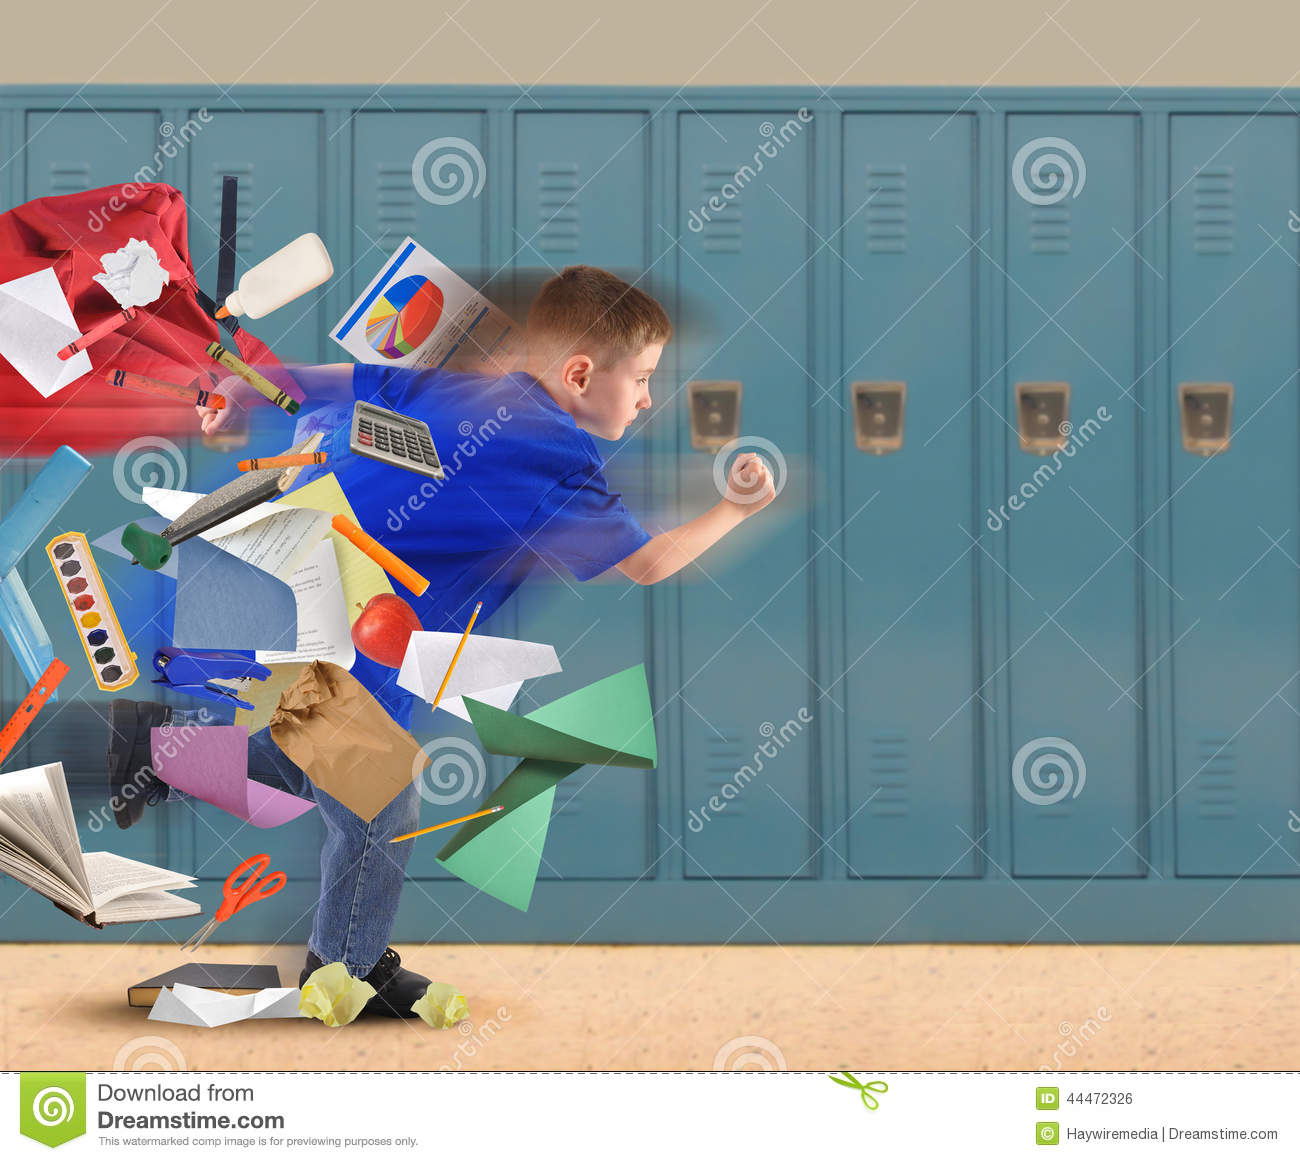 Running in the halls at school clipart free stock Running In The Hallway Clipart free stock